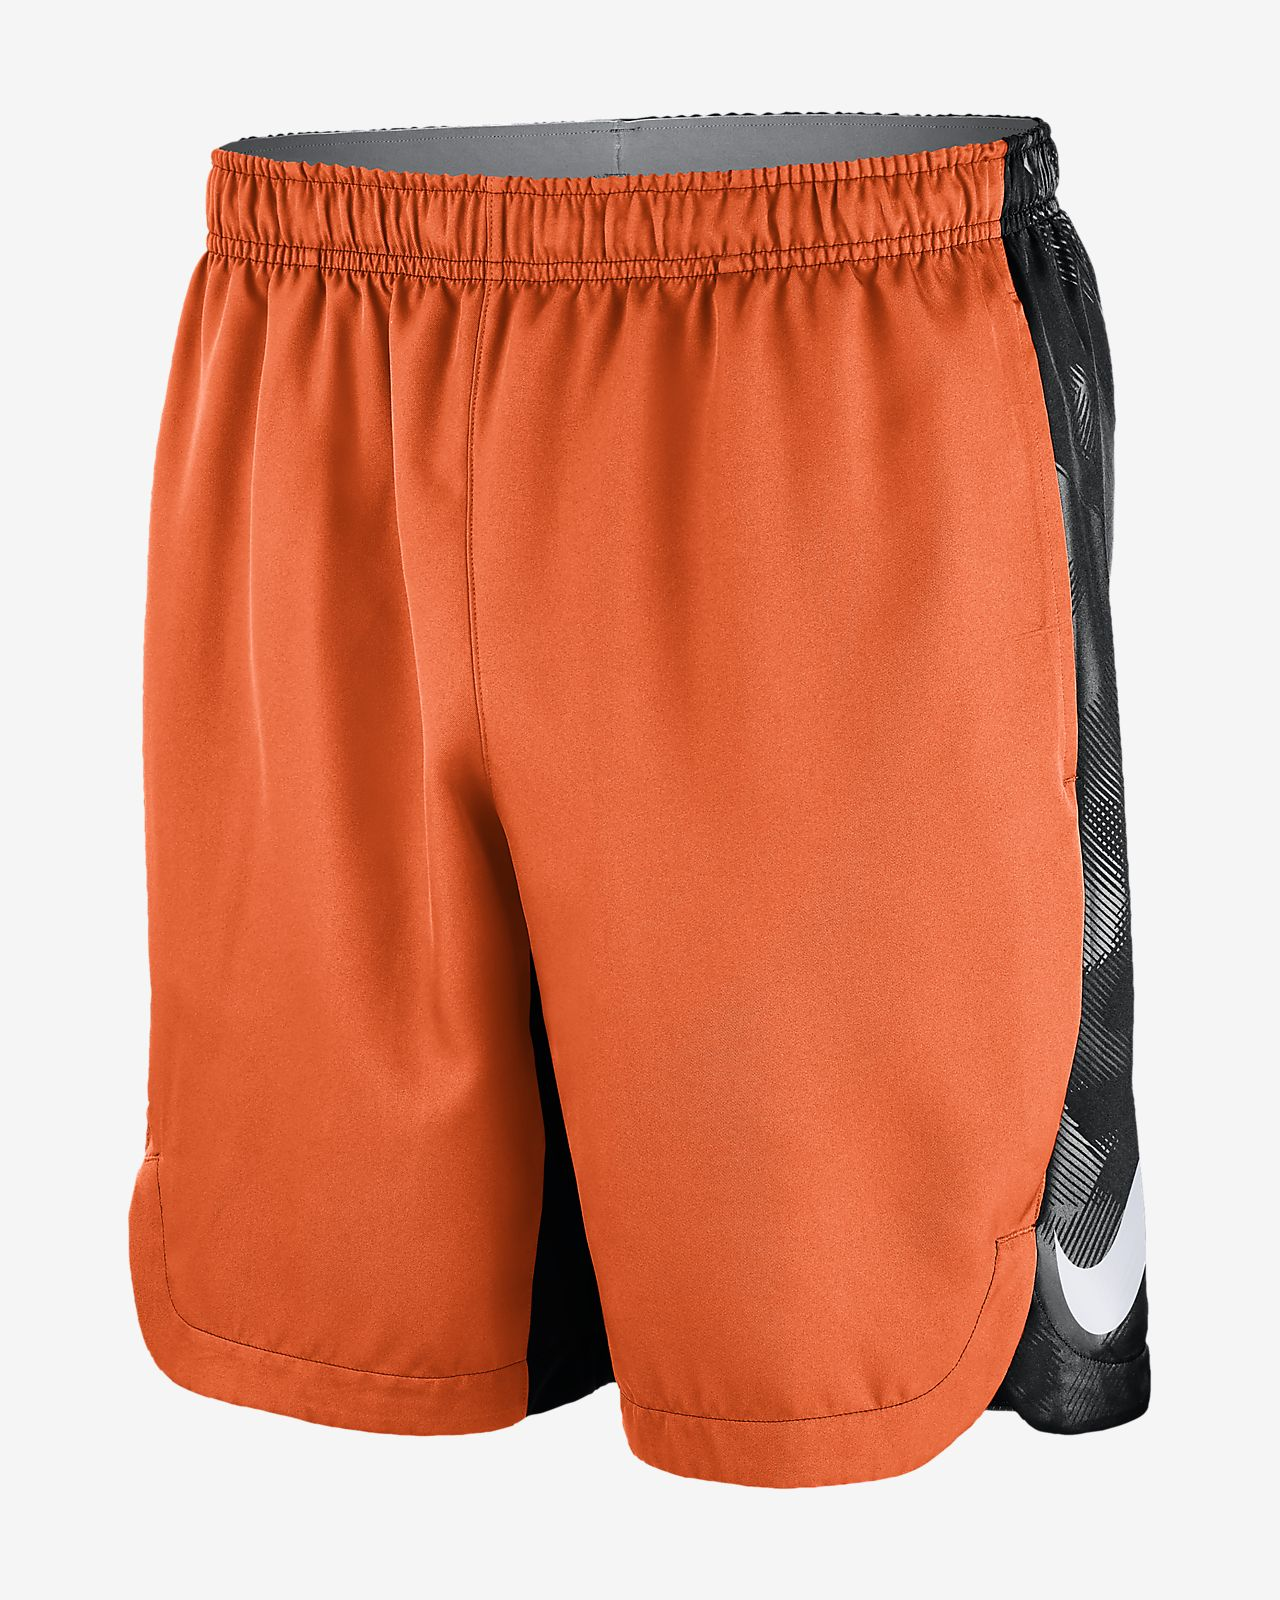 Nike Dri-FIT (MLB Giants) Men's Shorts